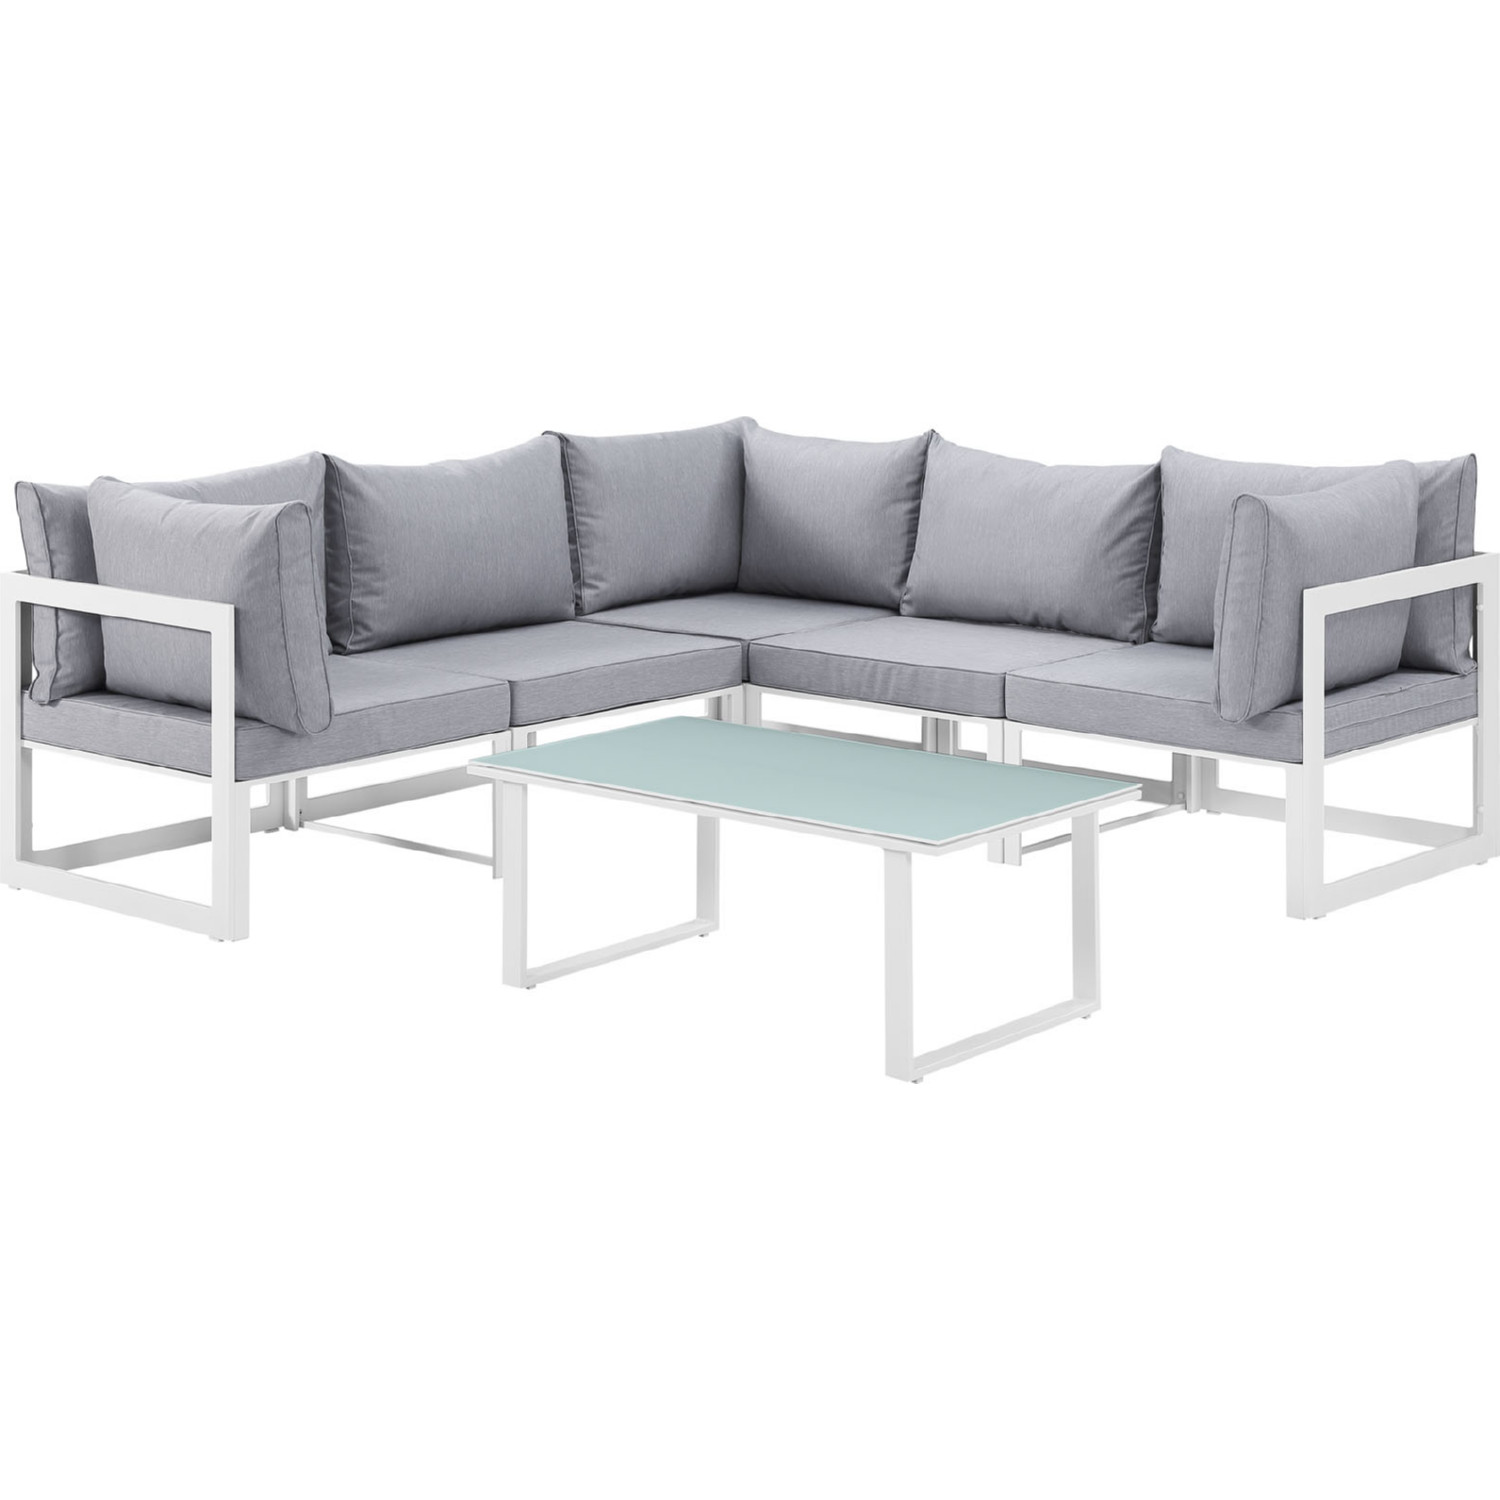 Sofa Set Action Fortuna 6 Piece Outdoor Patio Sectional Sofa Set In White W Gray Cushions By Modway